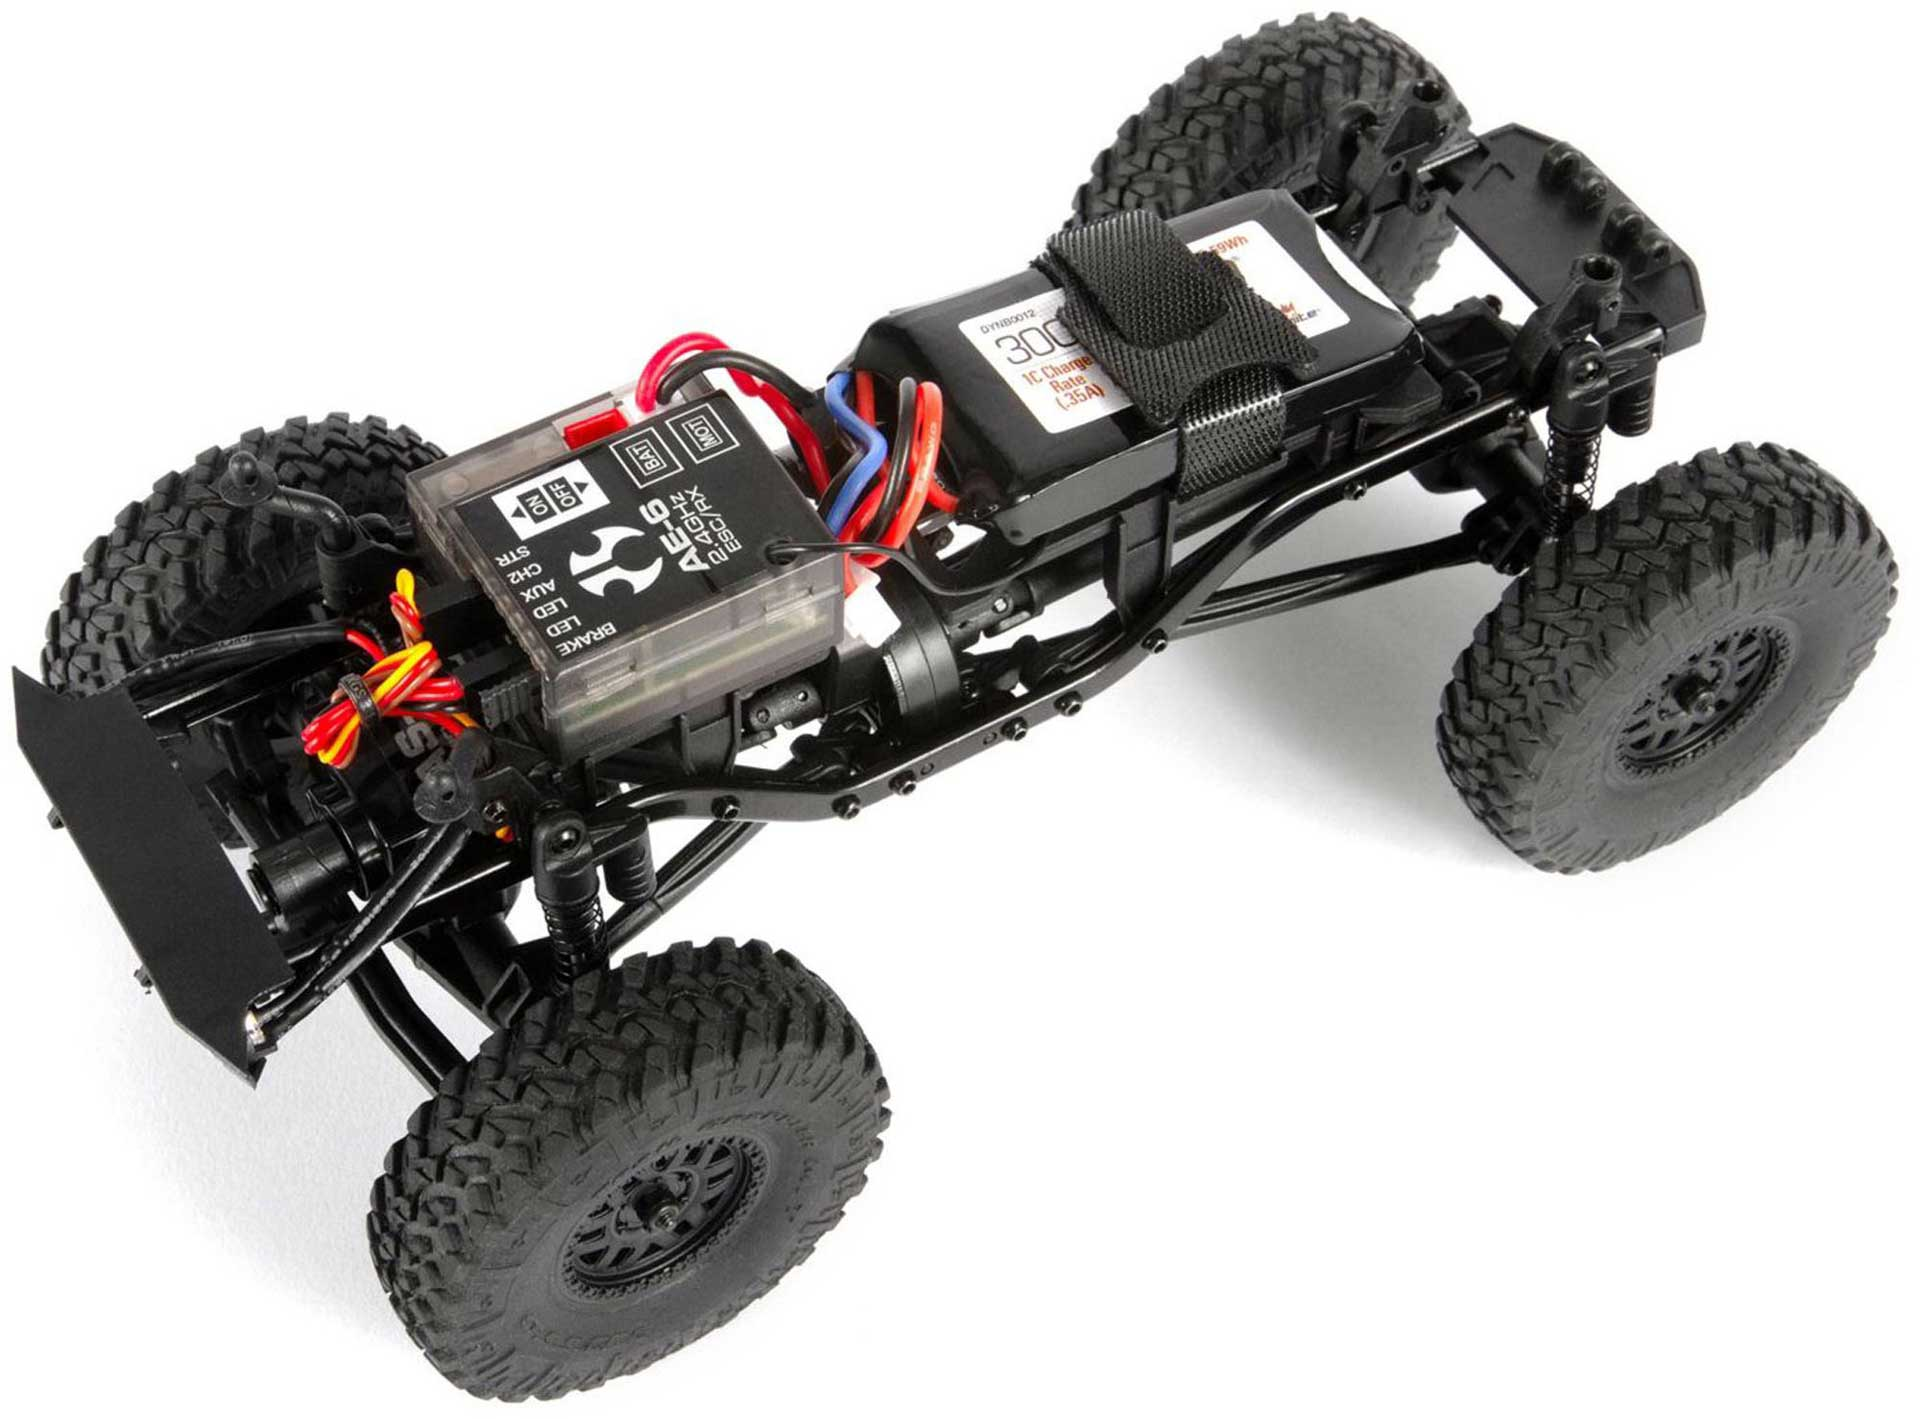 AXIAL SCX24 Deadbolt 1/24 Scale 4WD Rot RTR